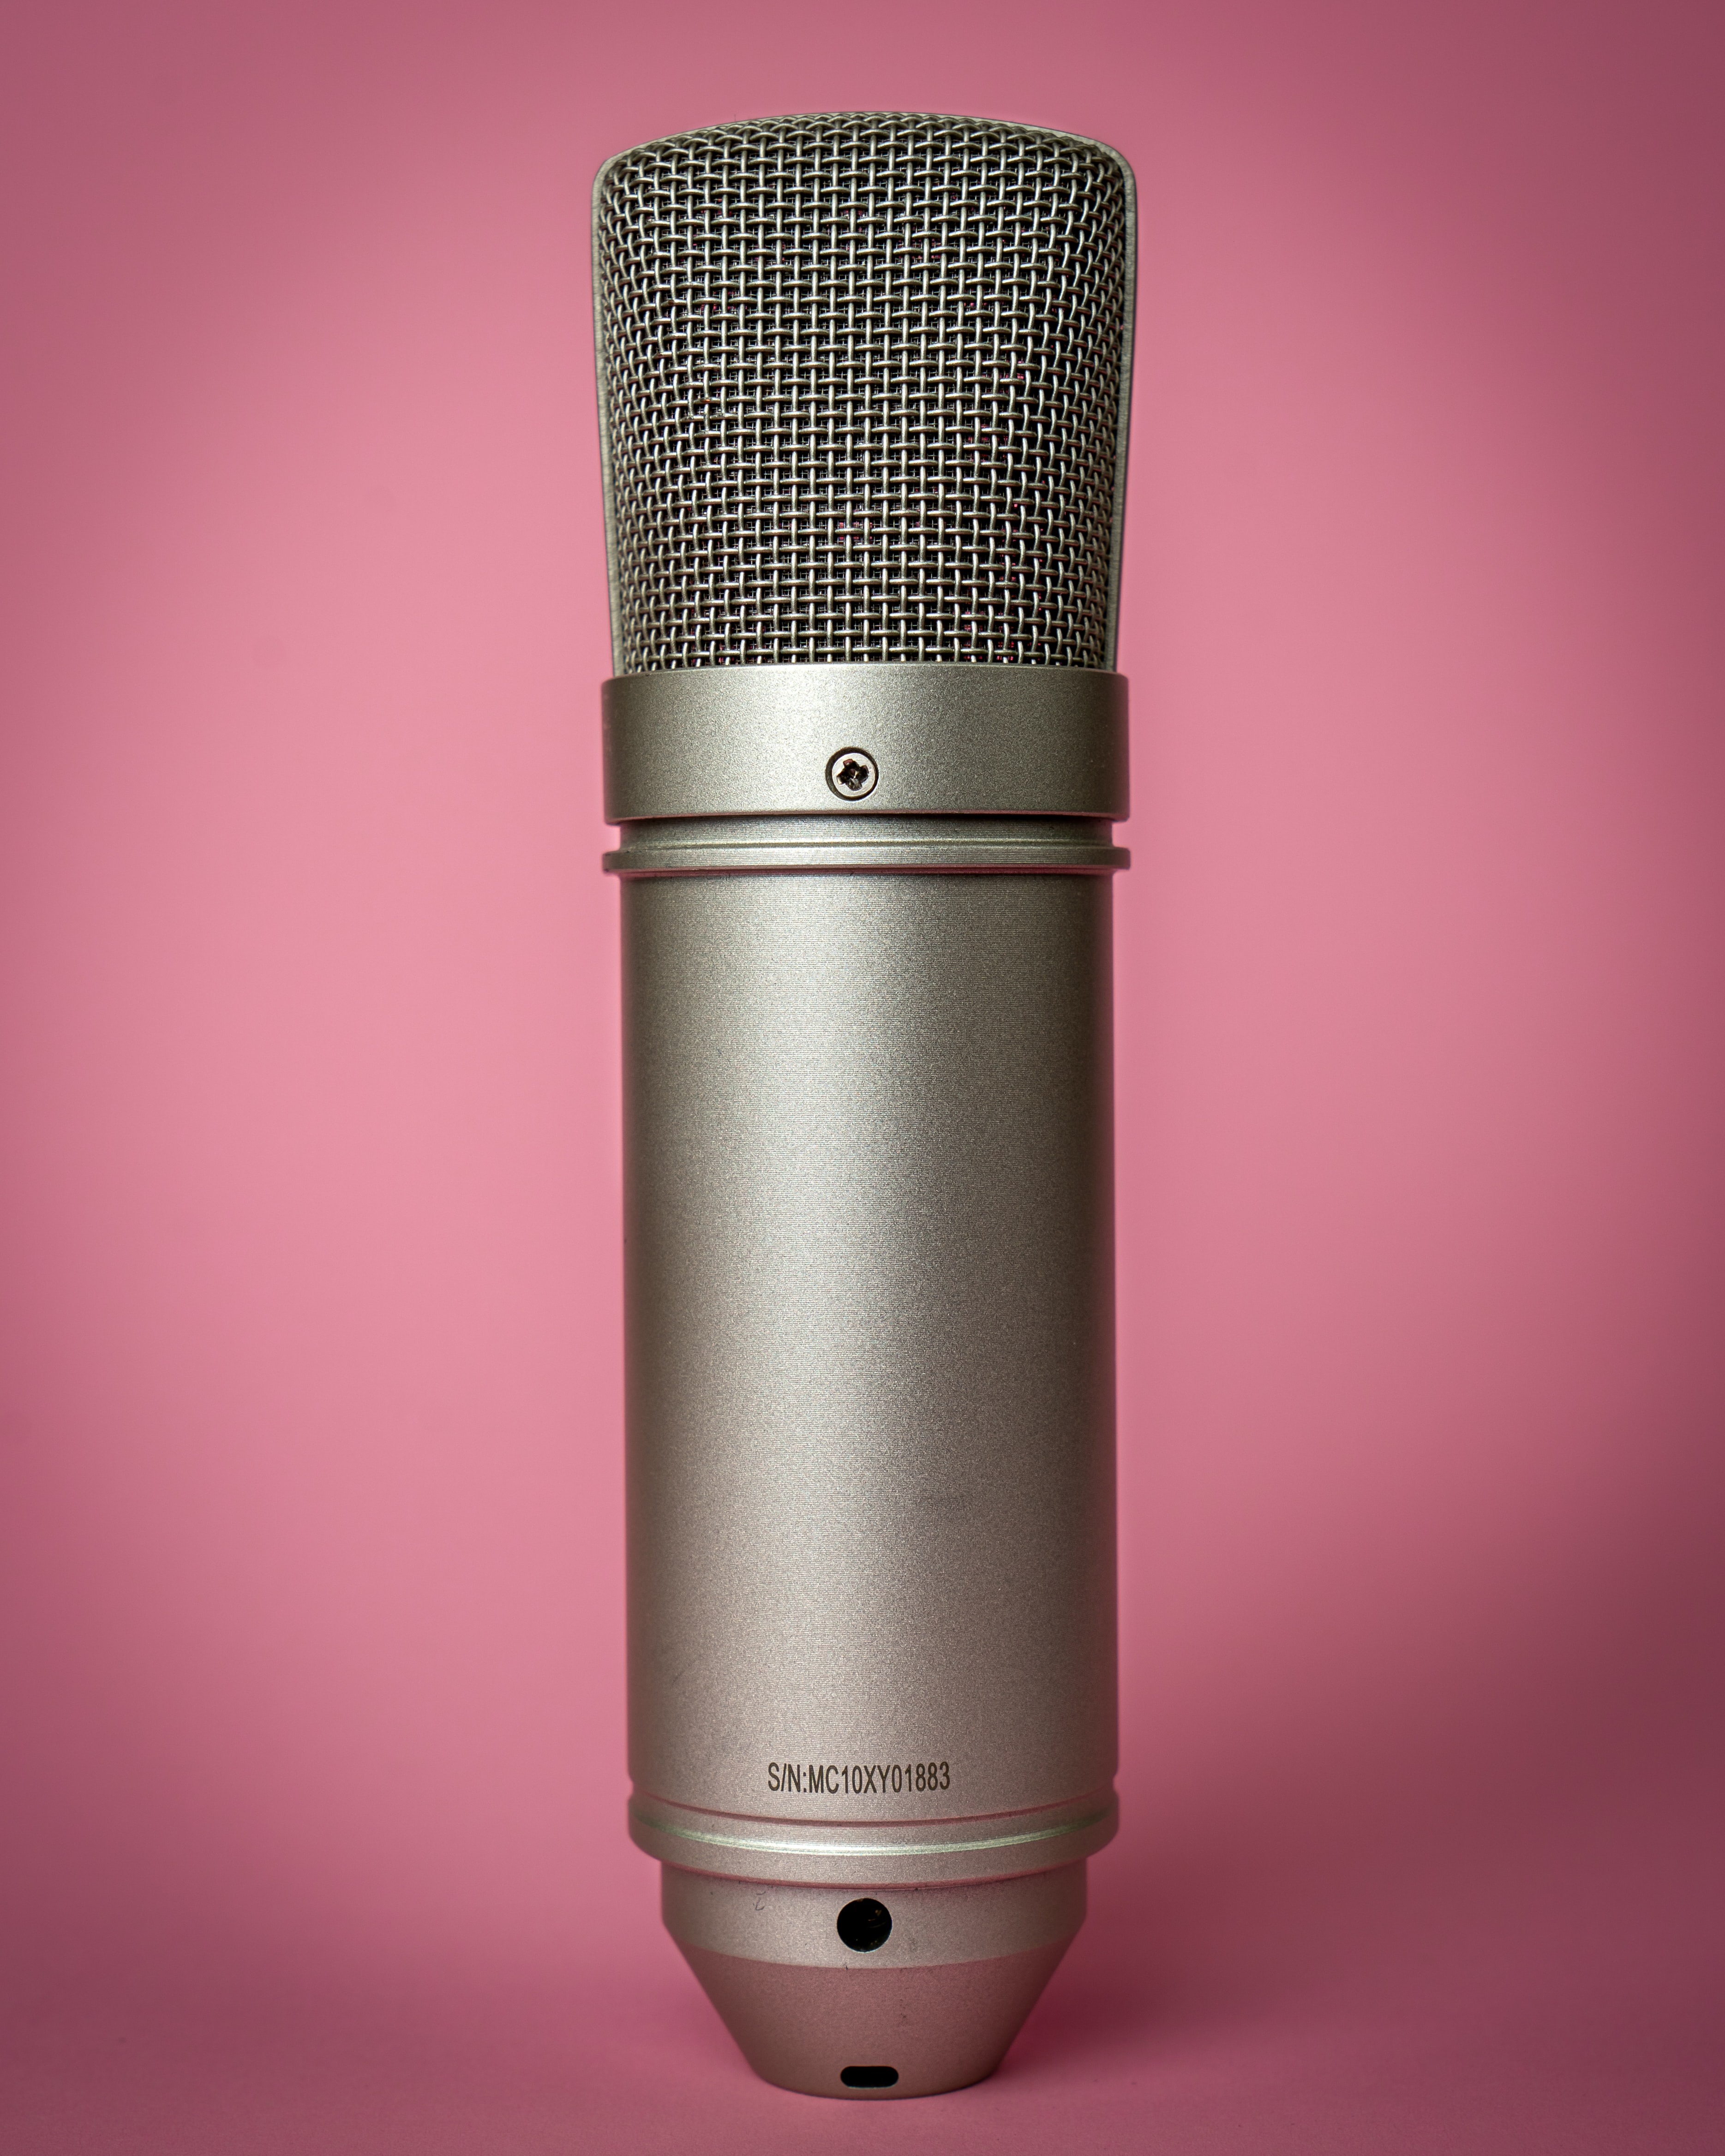 Large Condenser Microphone majestically set against a soft pink background.